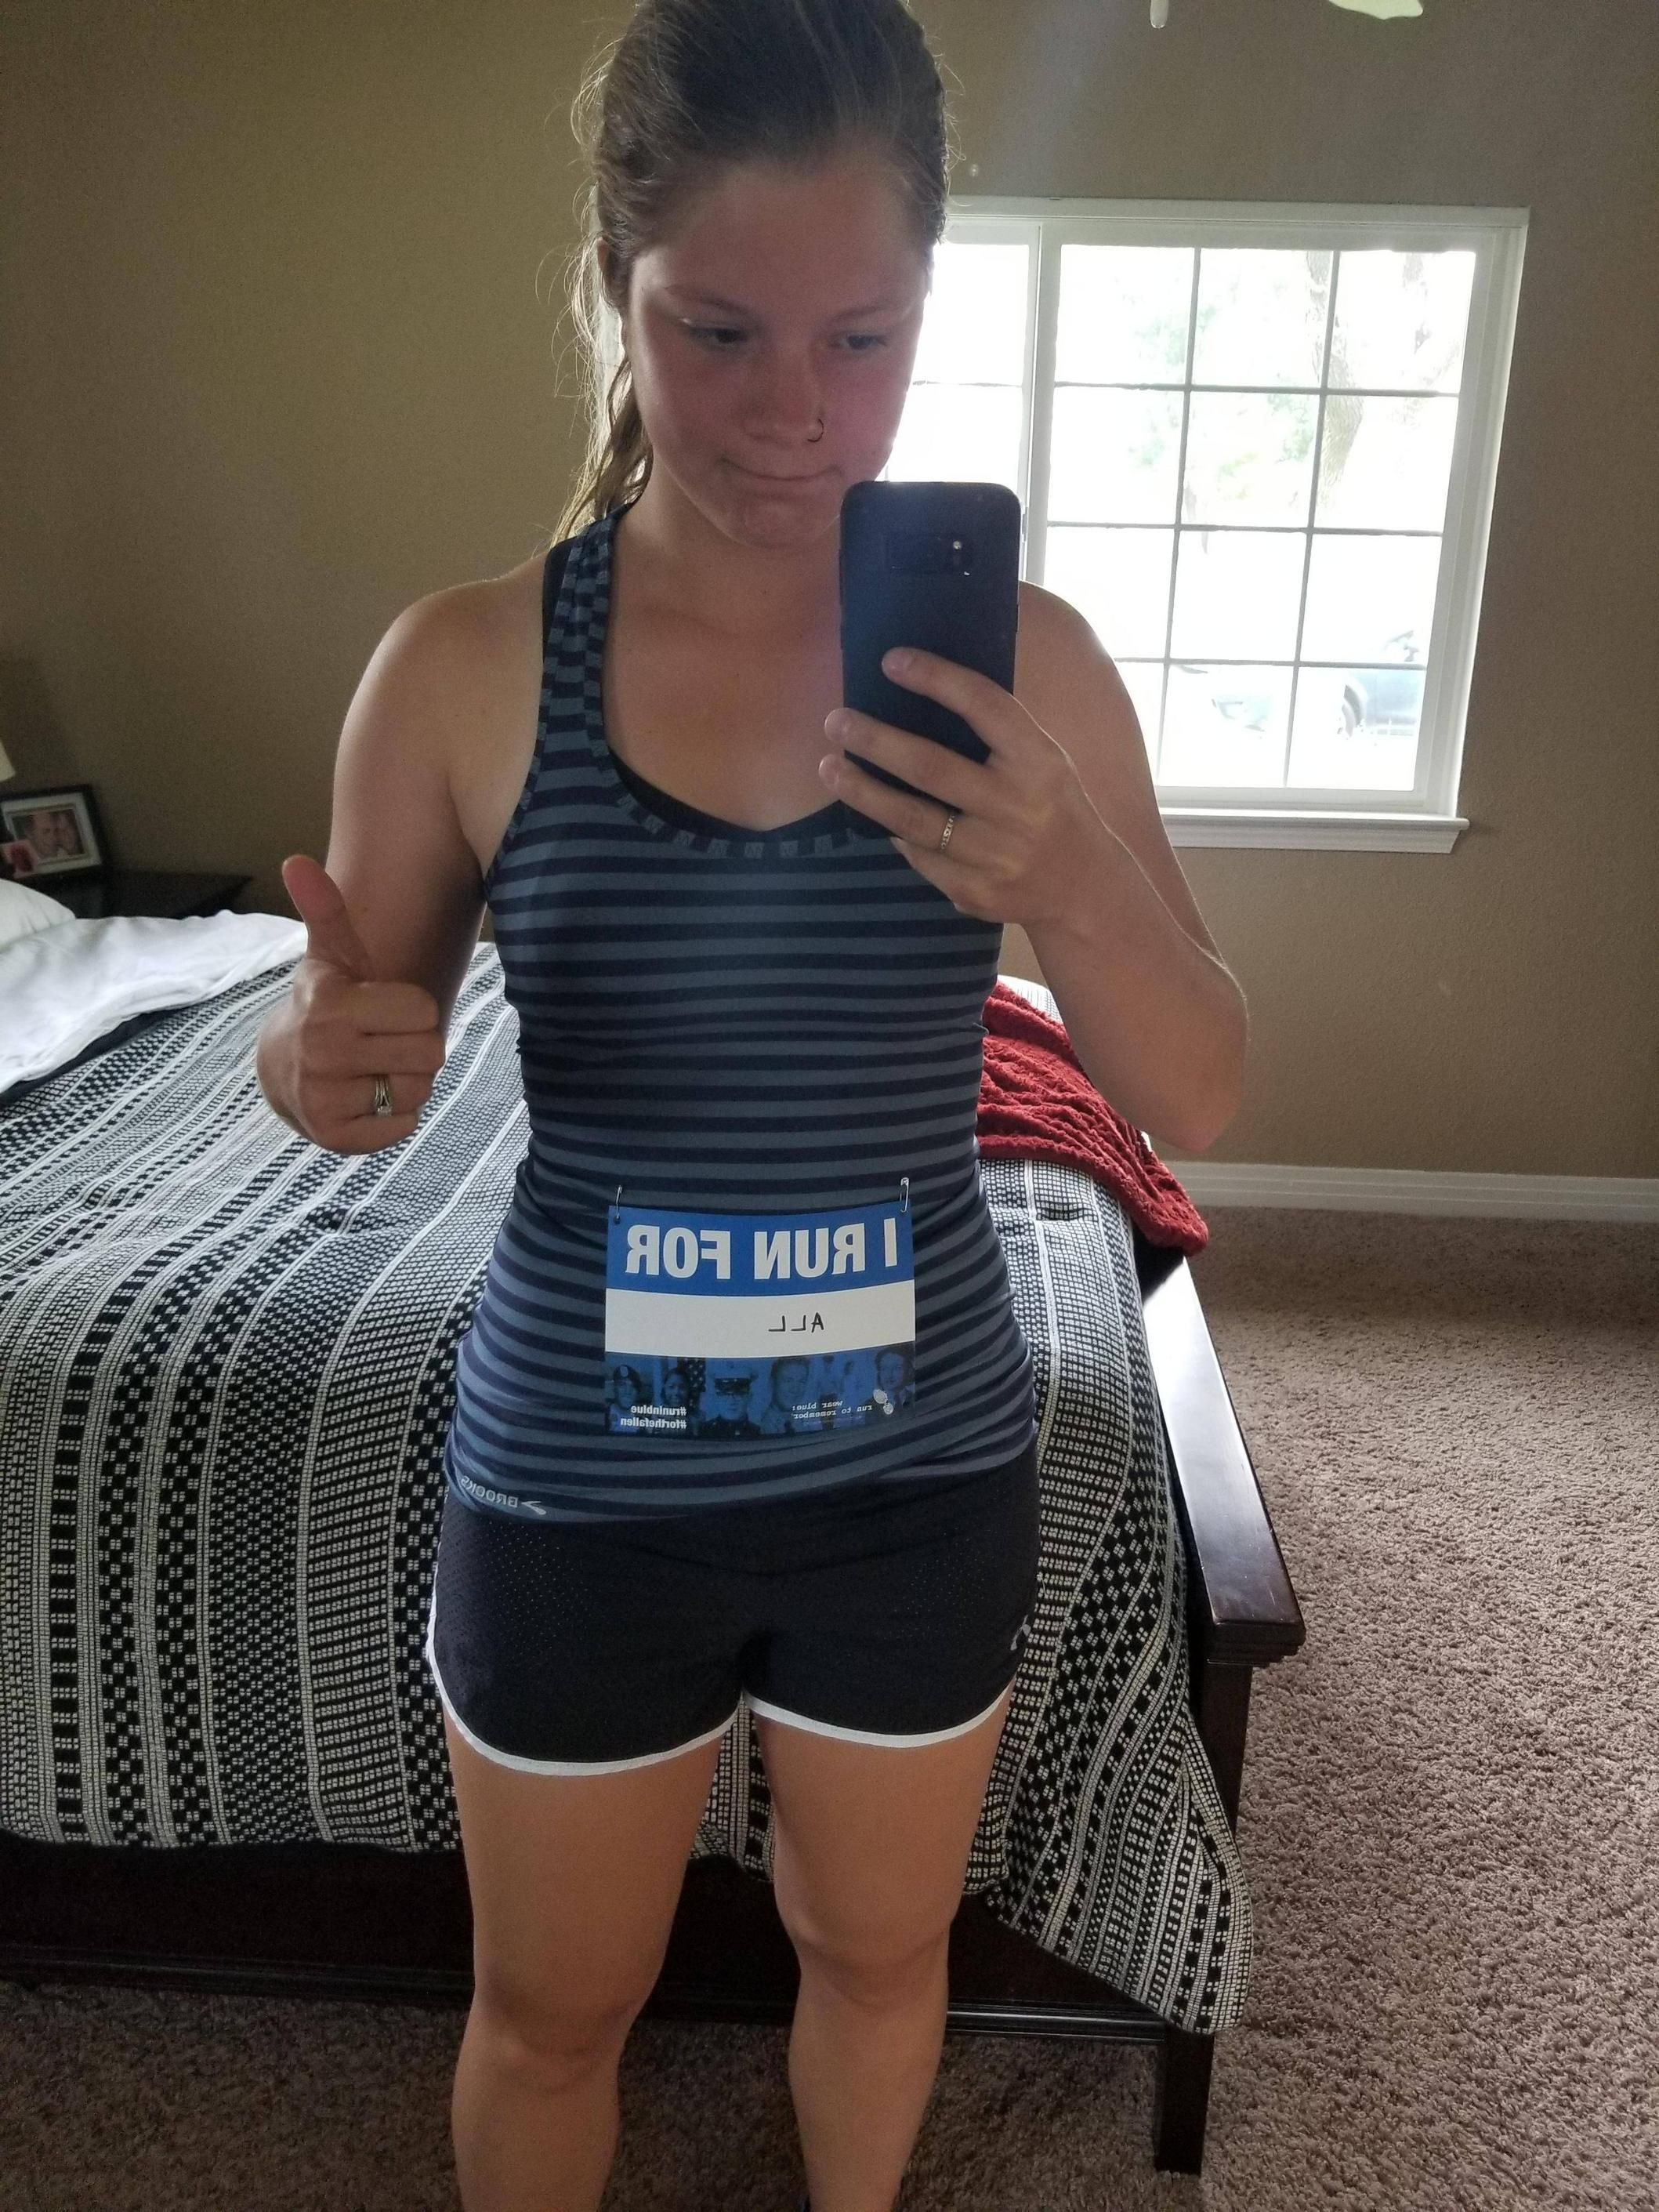 47 Year Old Woman Trying To Lose Weight